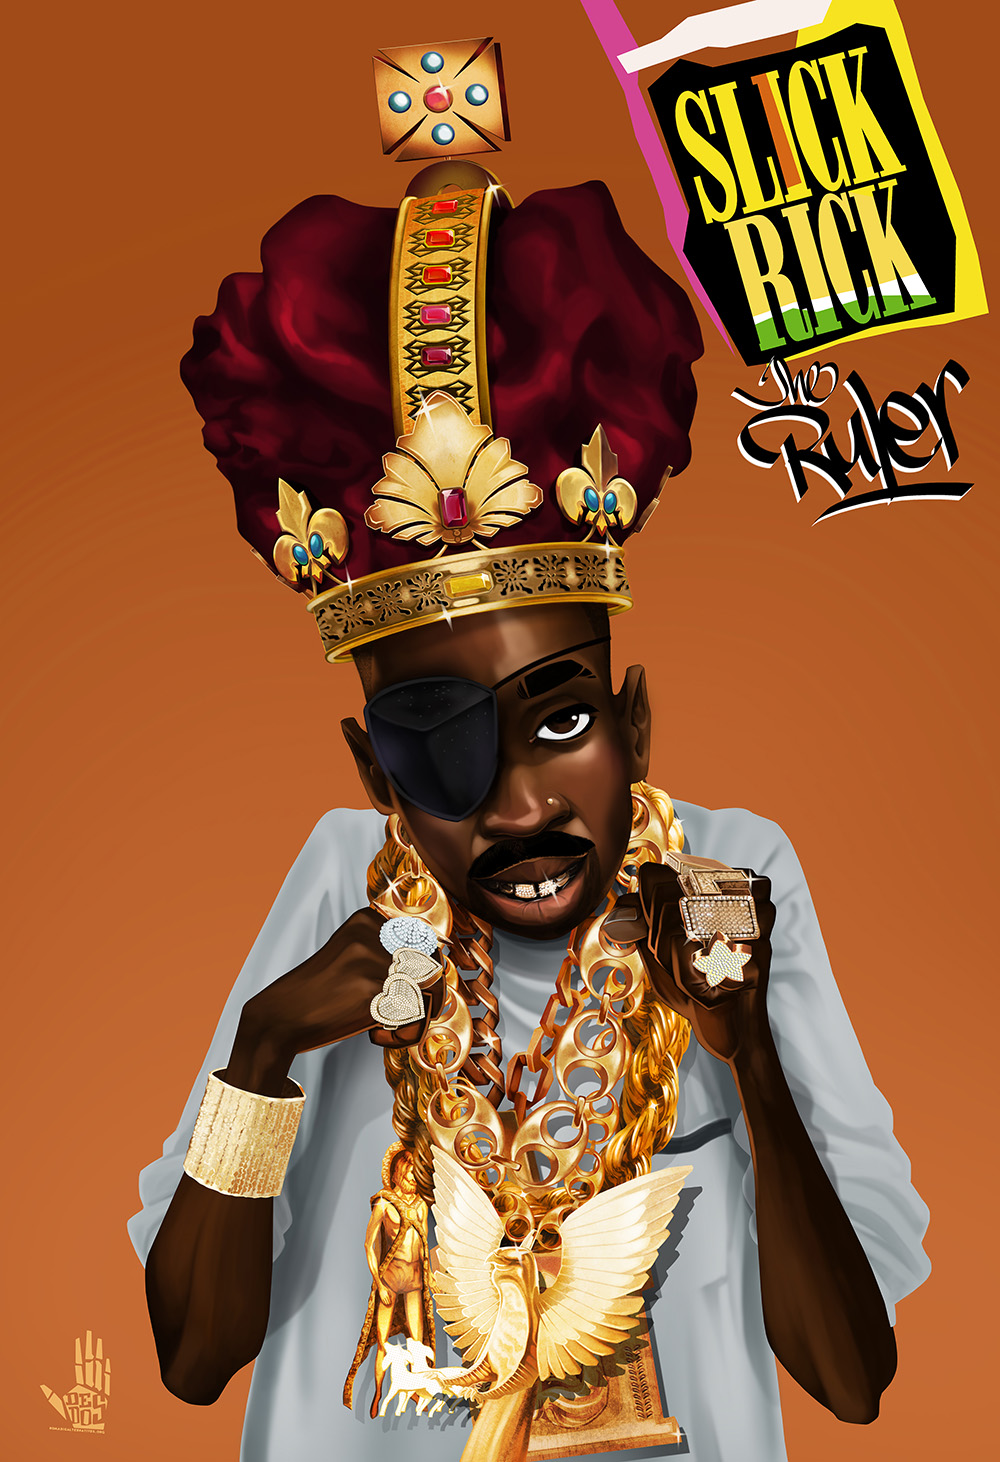 SLICK RICK the Ruler_sml.jpg